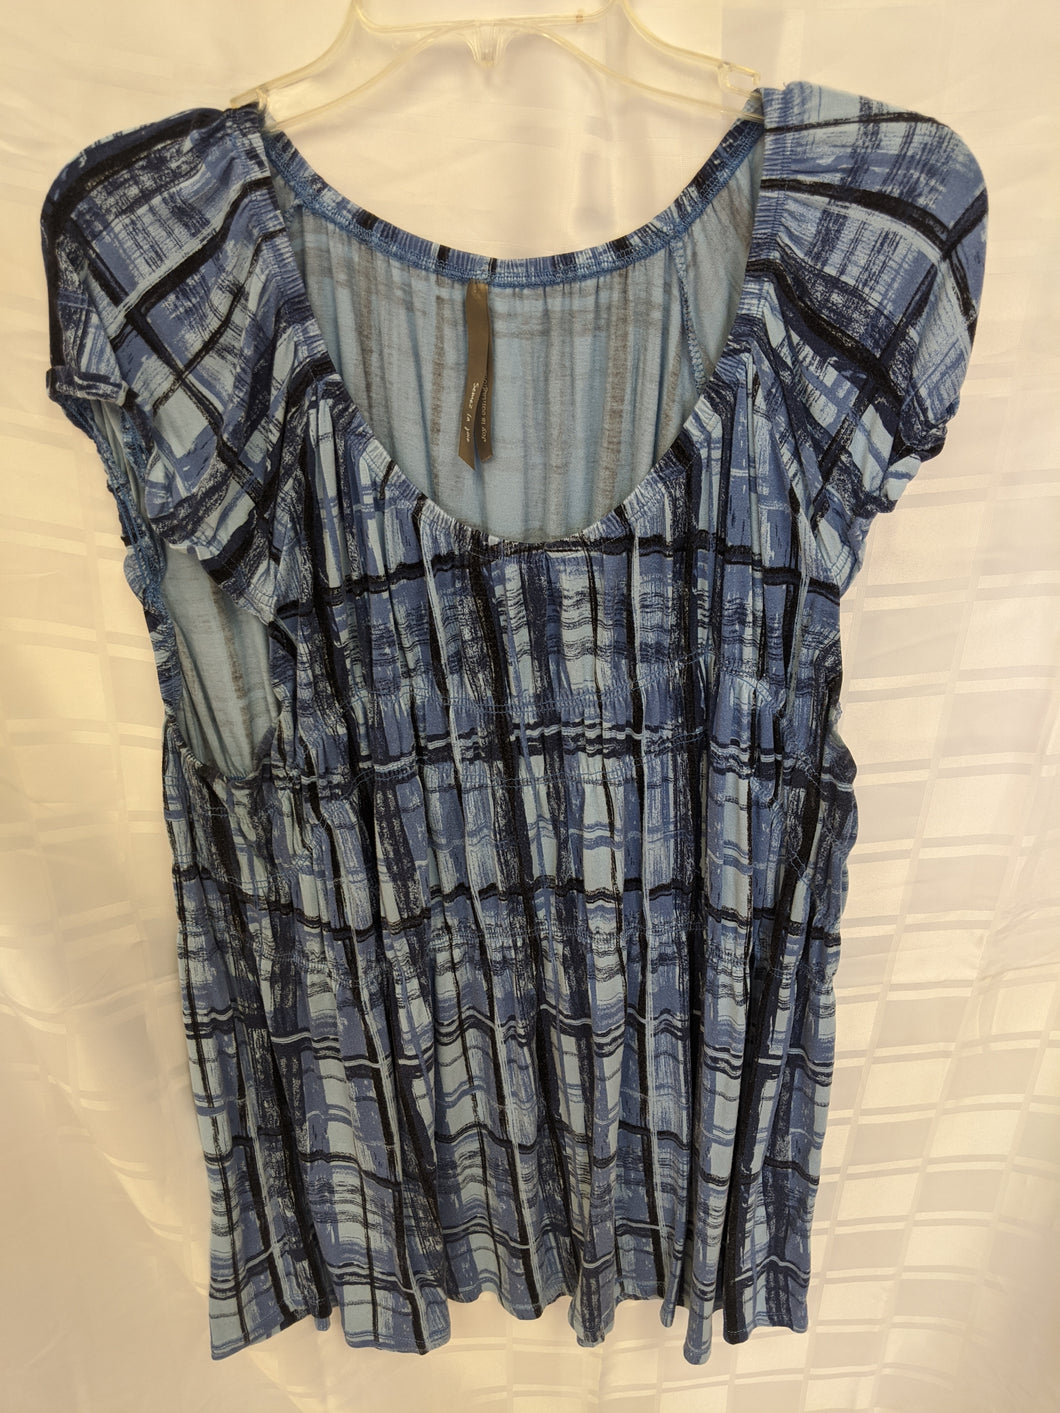 Sleeveless Top - Size 3X